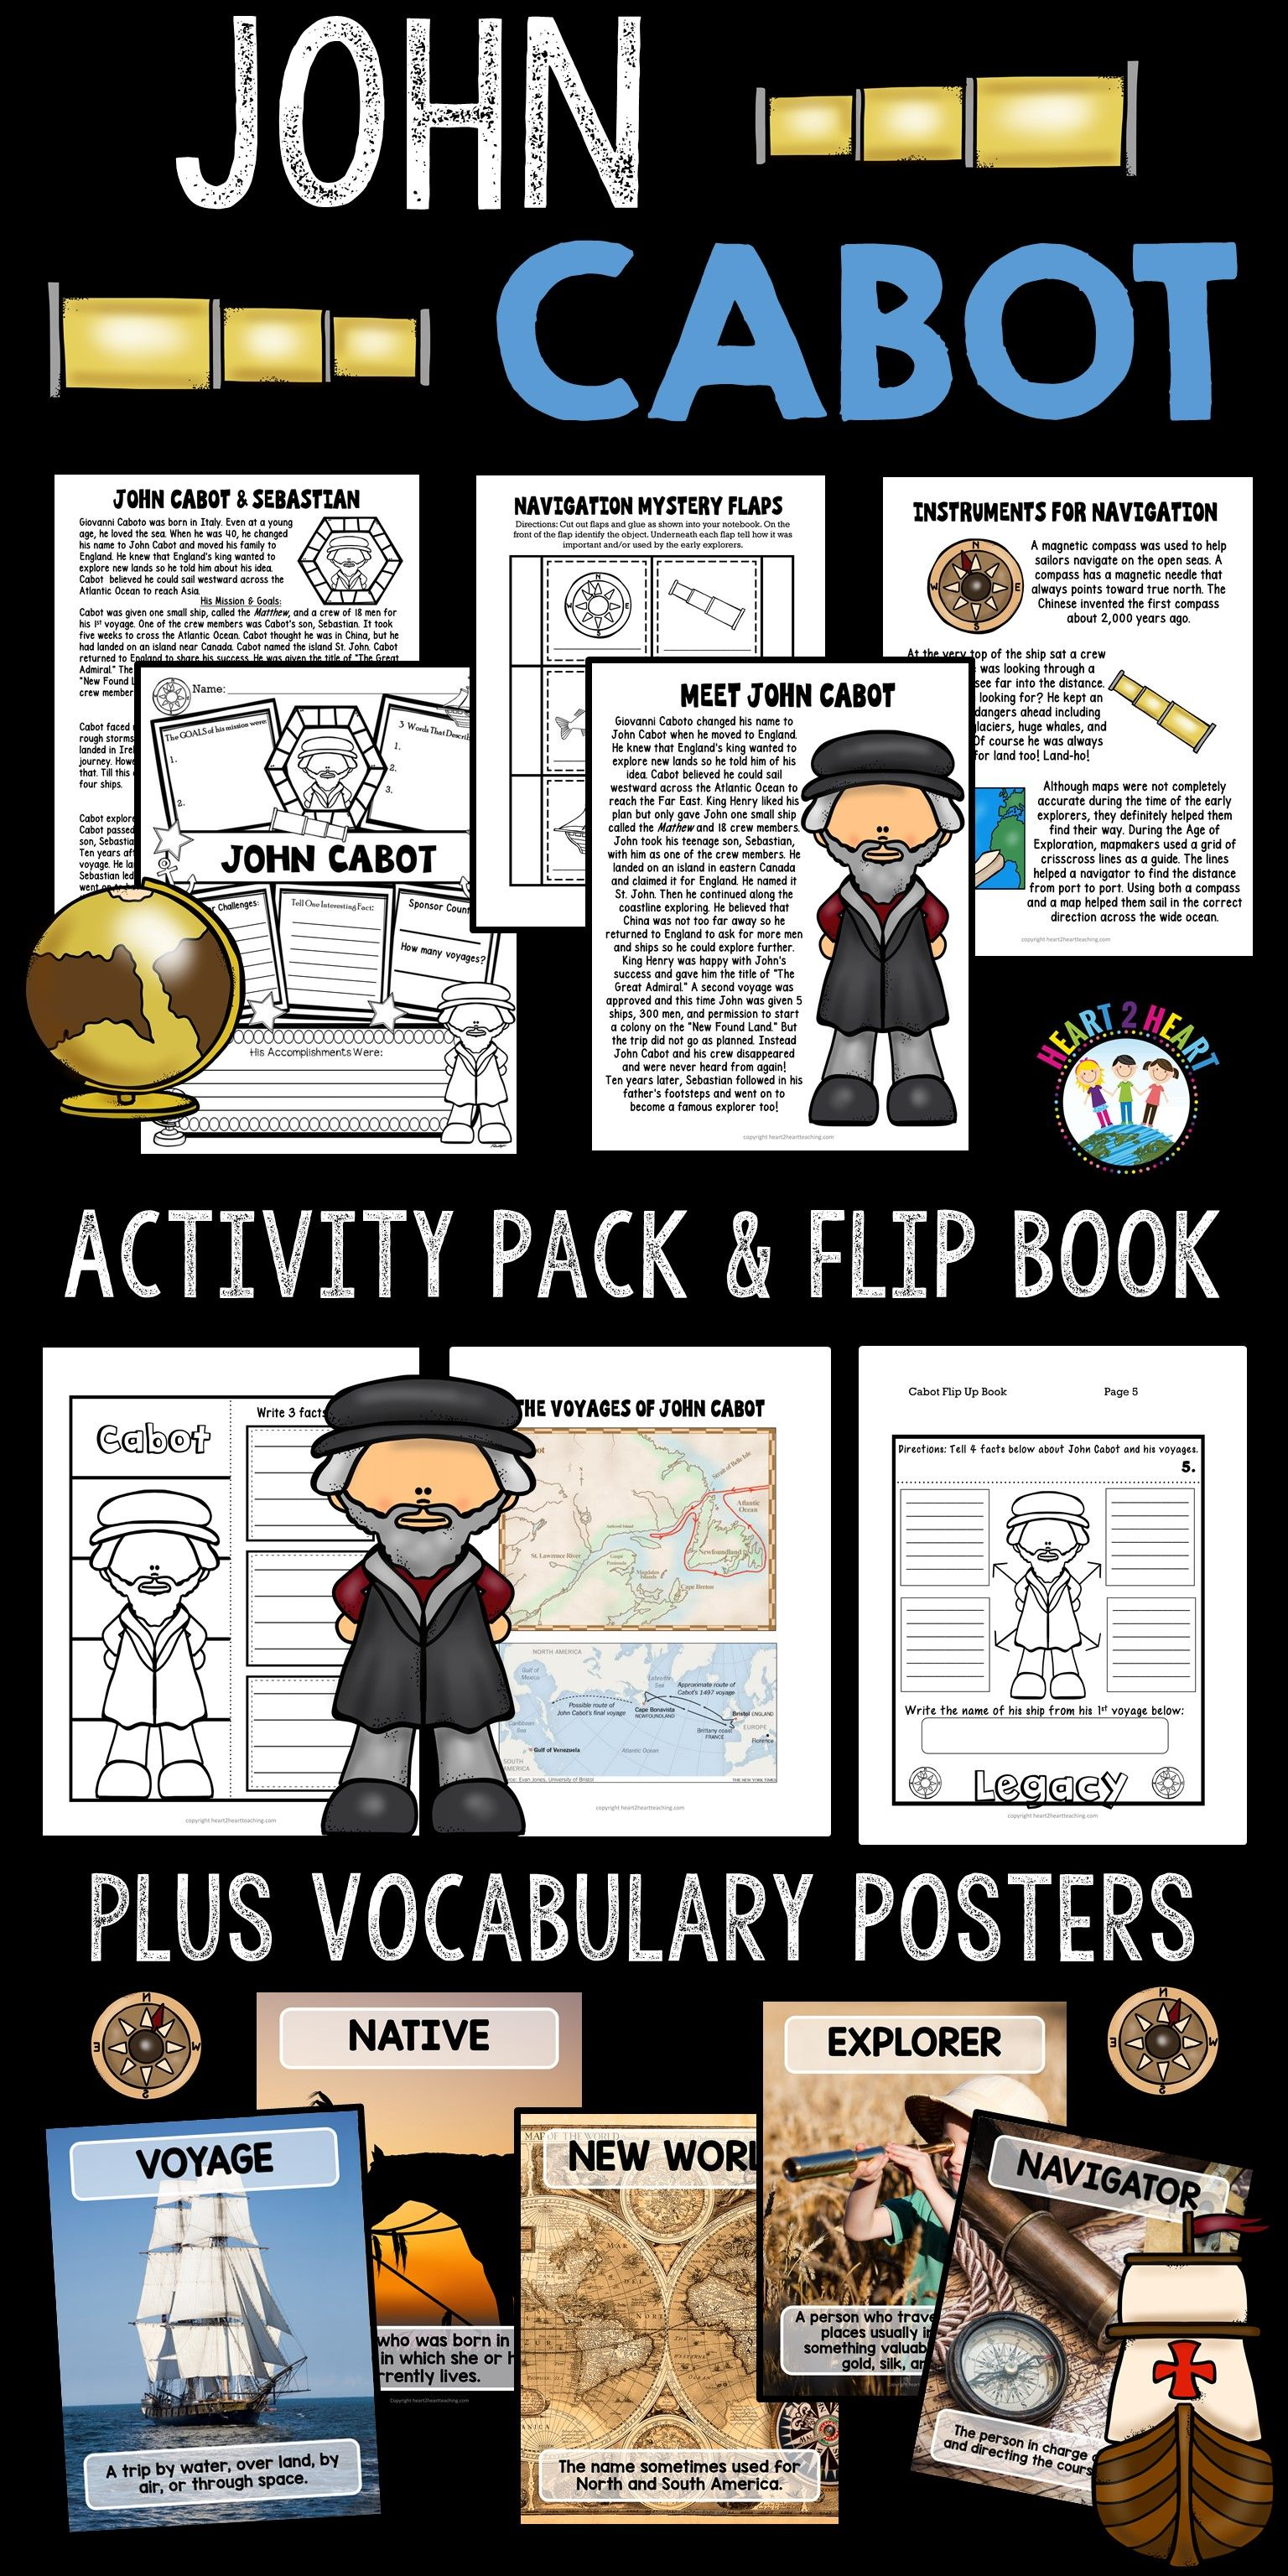 John Cabot Worksheet For 4th Grade   Printable Worksheets and Activities  for Teachers [ 3072 x 1536 Pixel ]